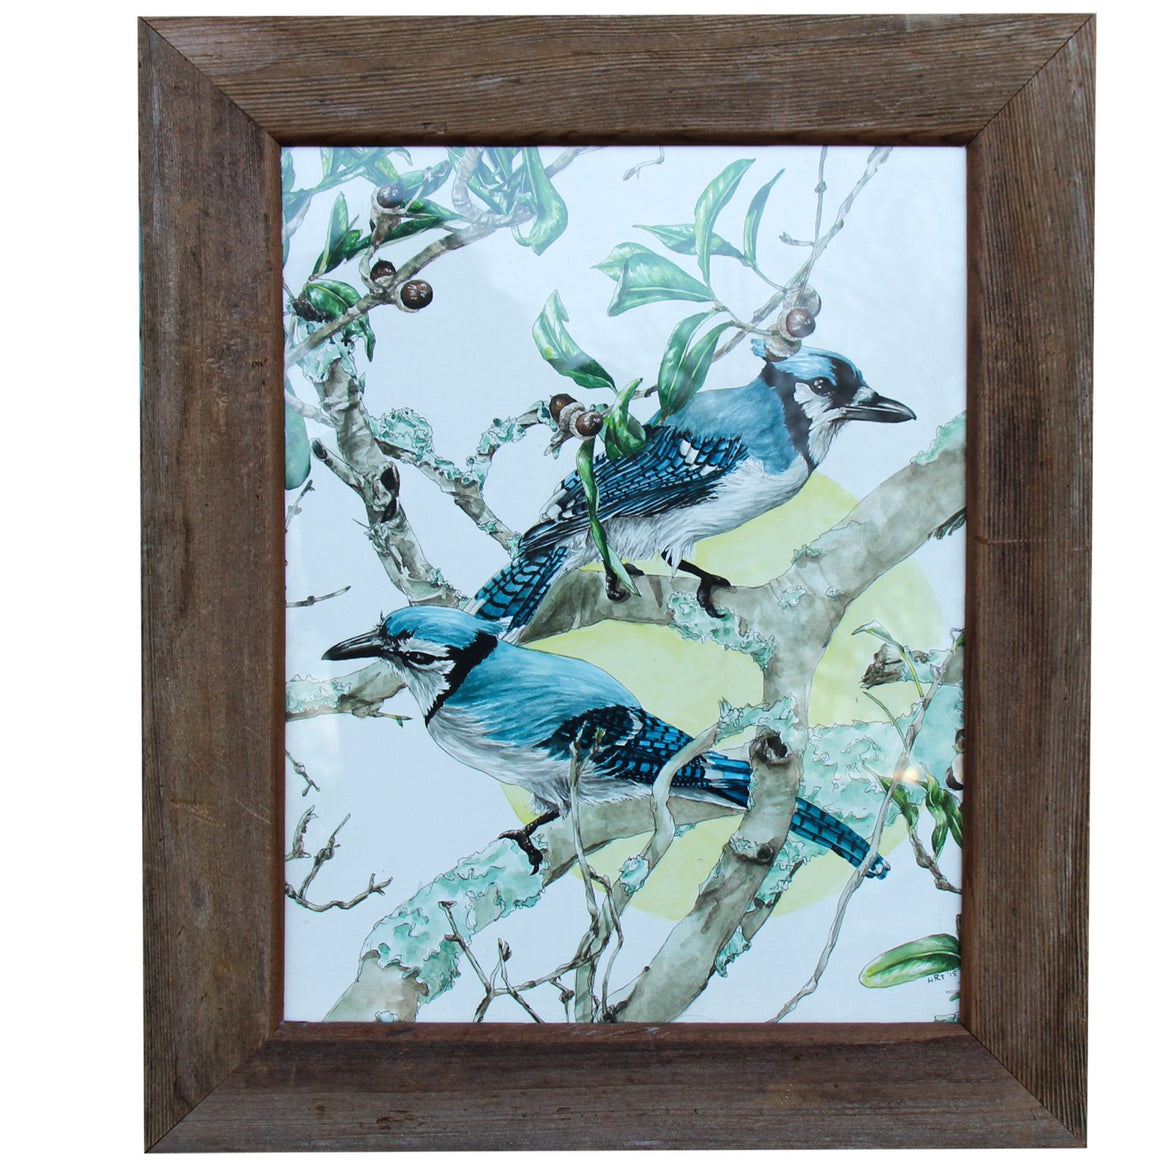 Jays in Live Oak - Hallie Rose Taylor - 11x14""